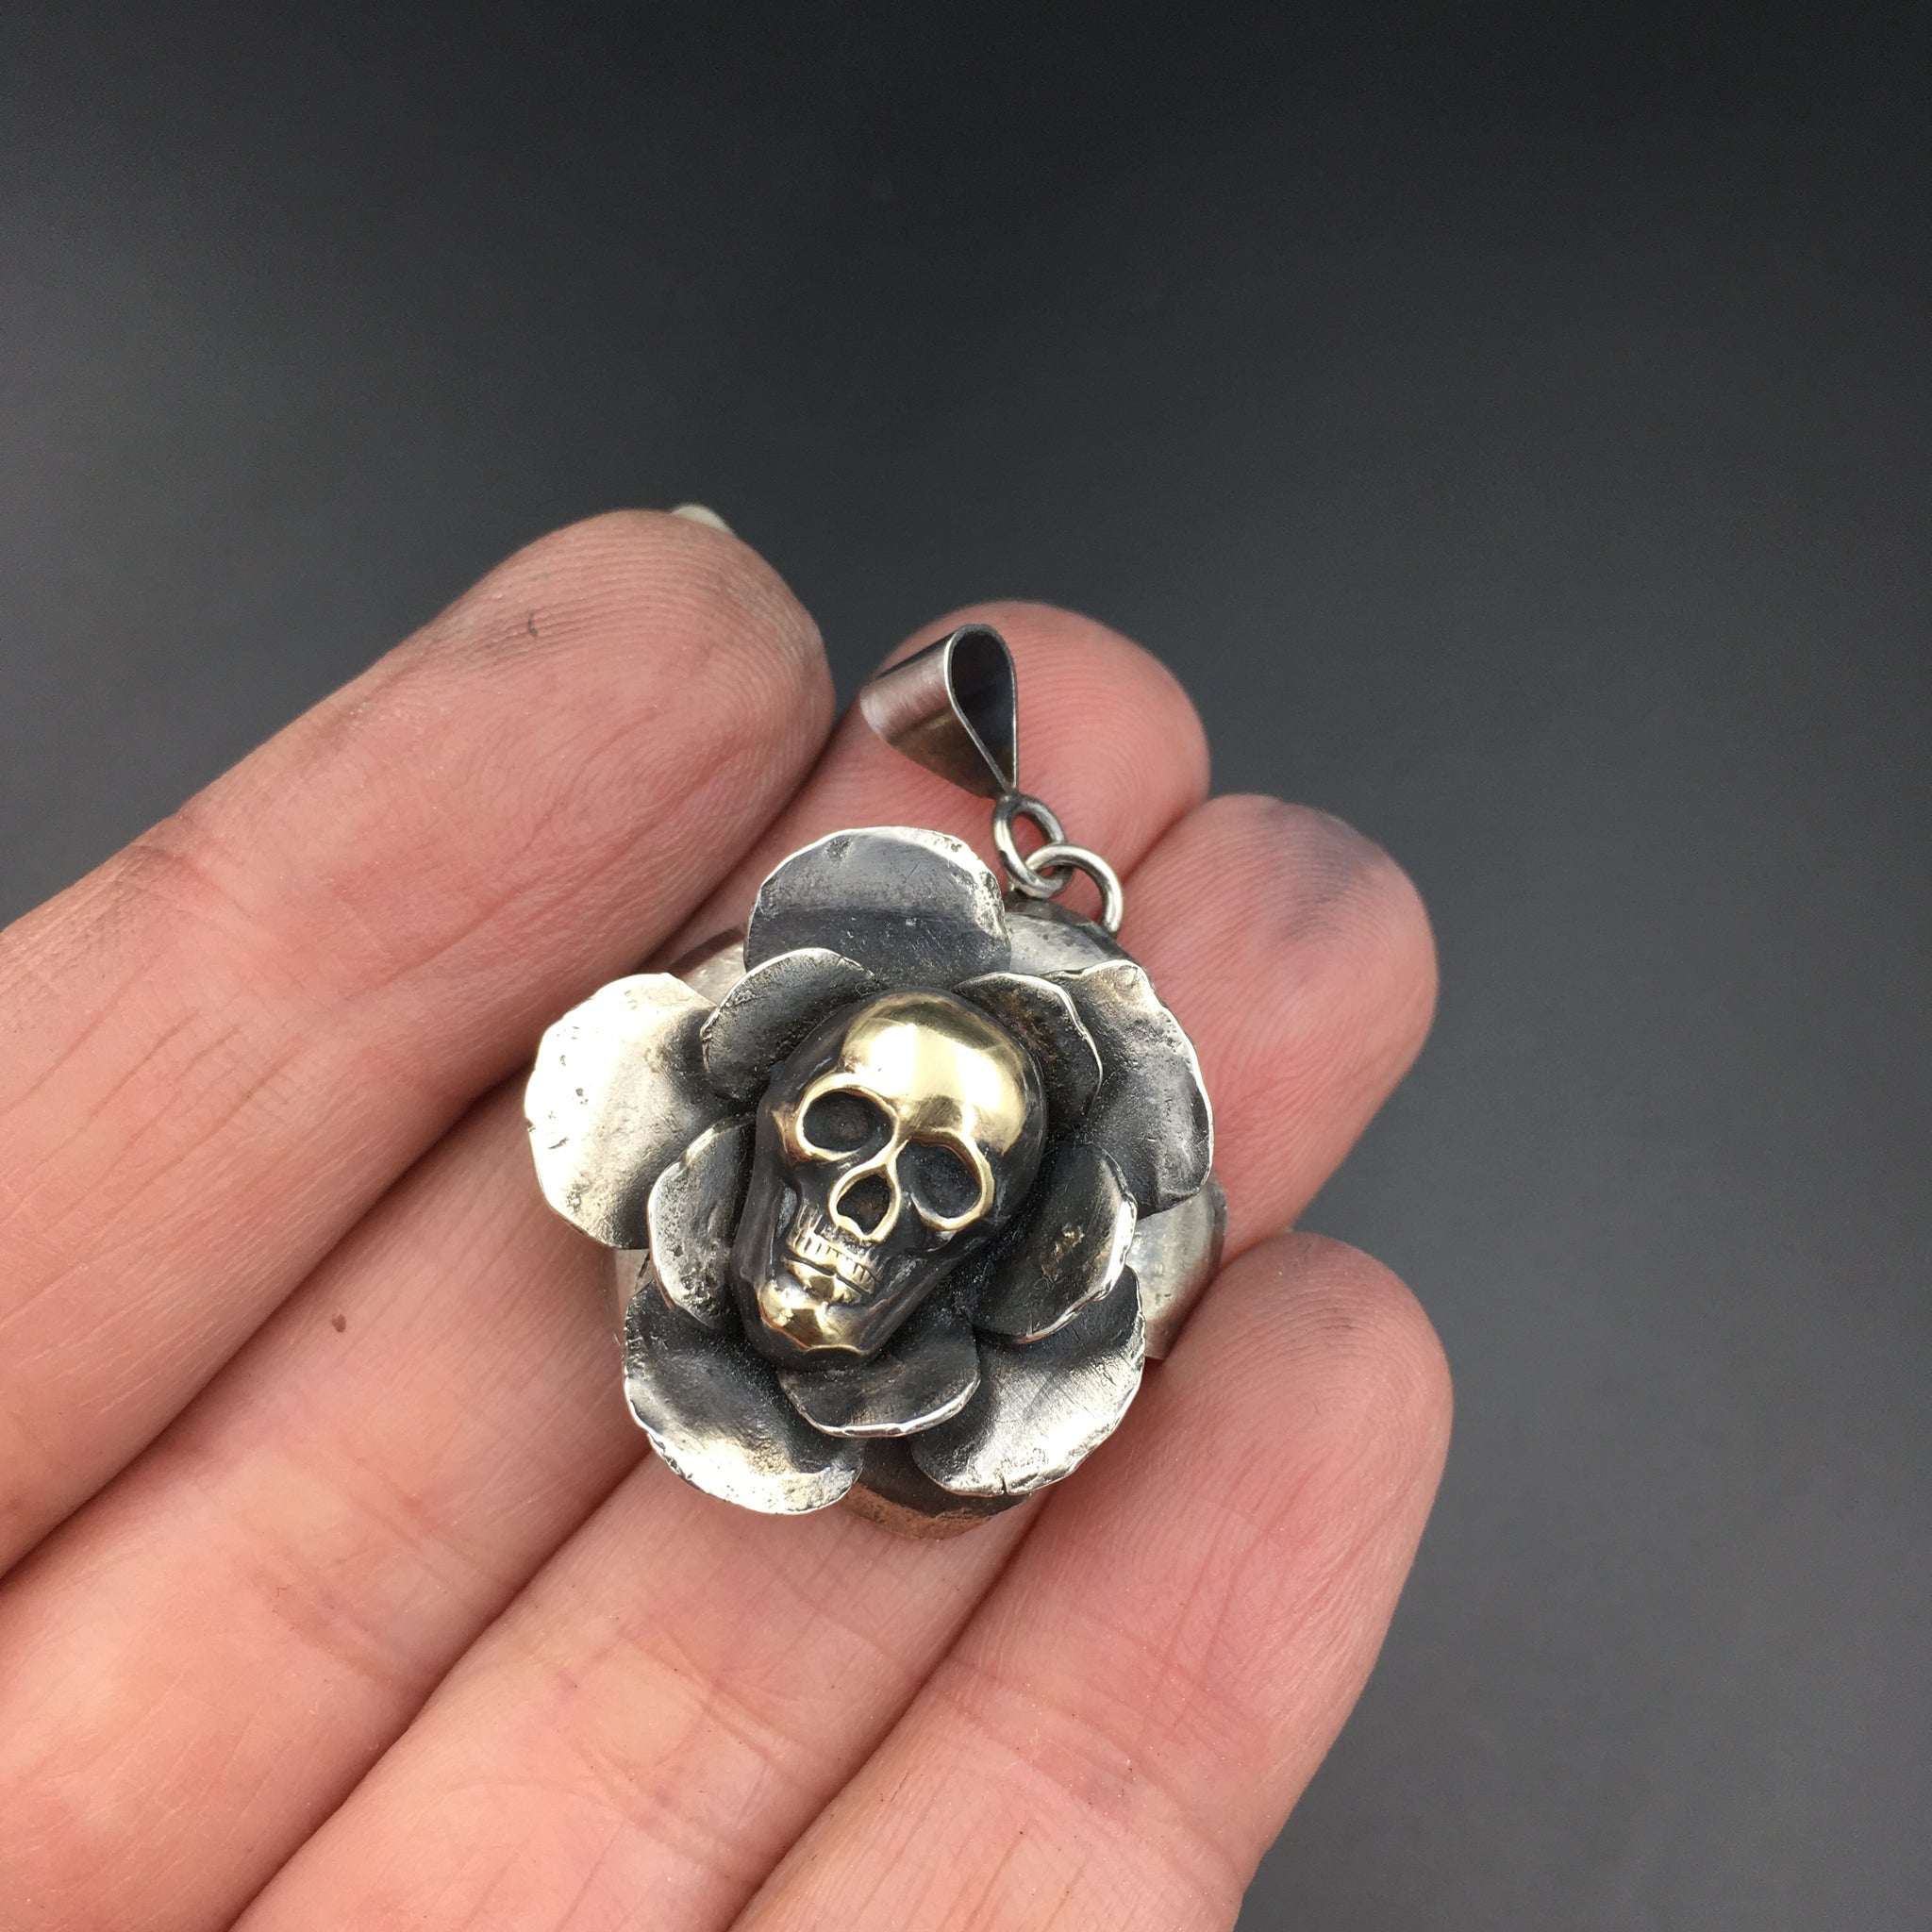 Handcrafted Sterling Silver Rose Pendant with Brass Skull